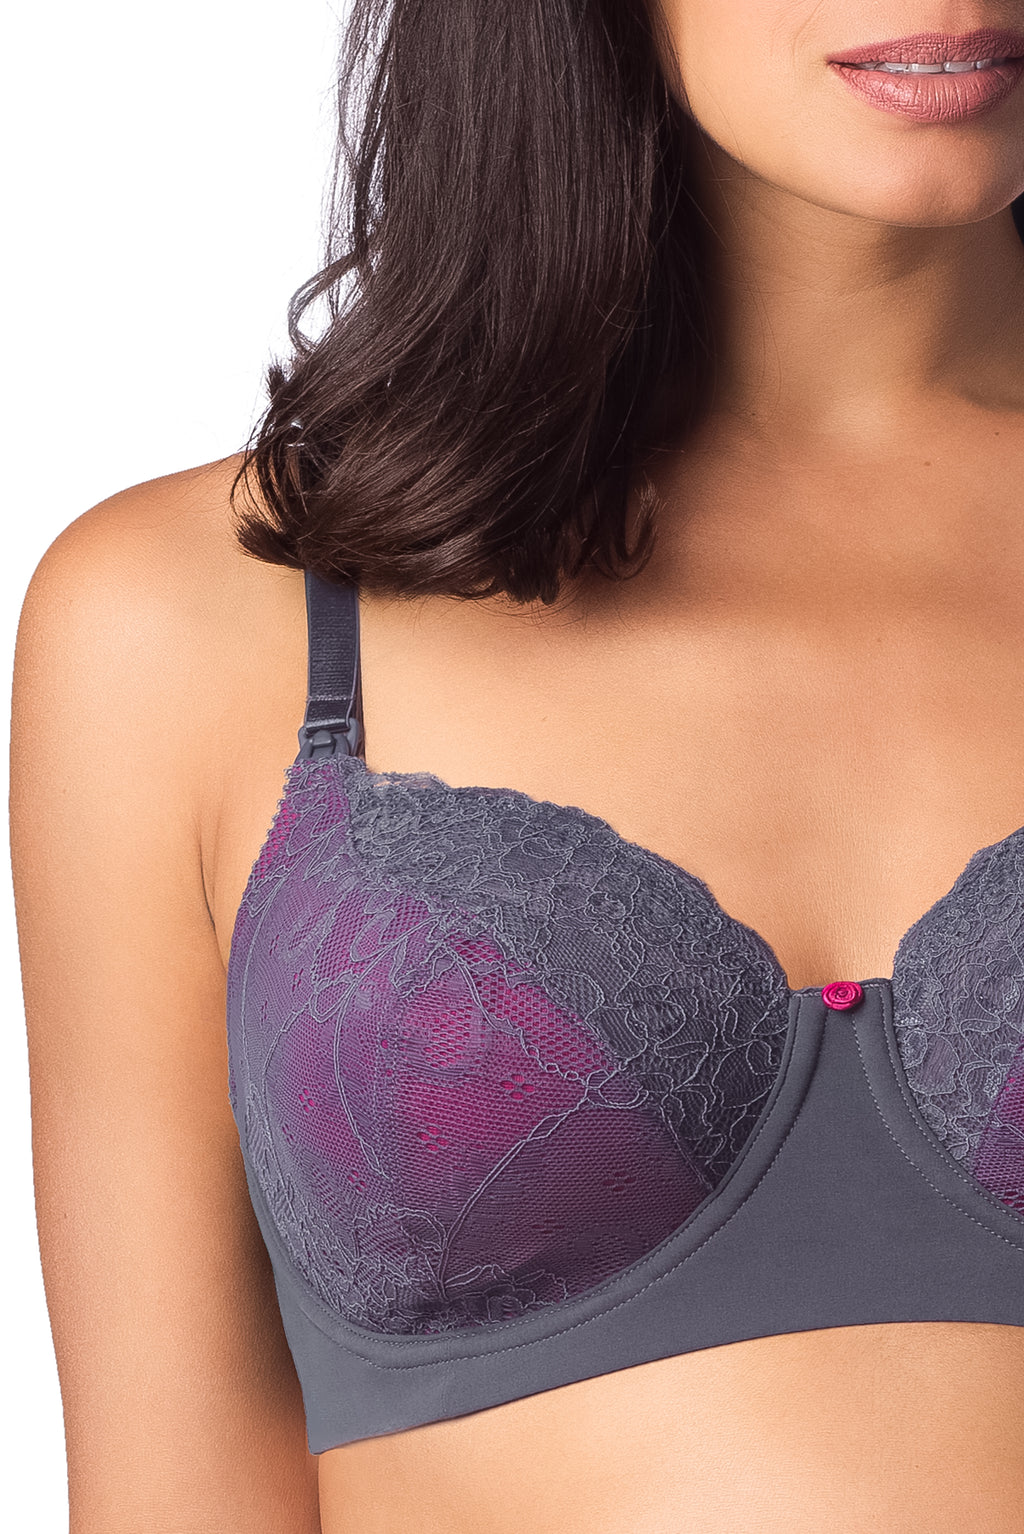 TEMPTATION GRAPHITE NURSING BRA - FLEXI UNDERWIRE